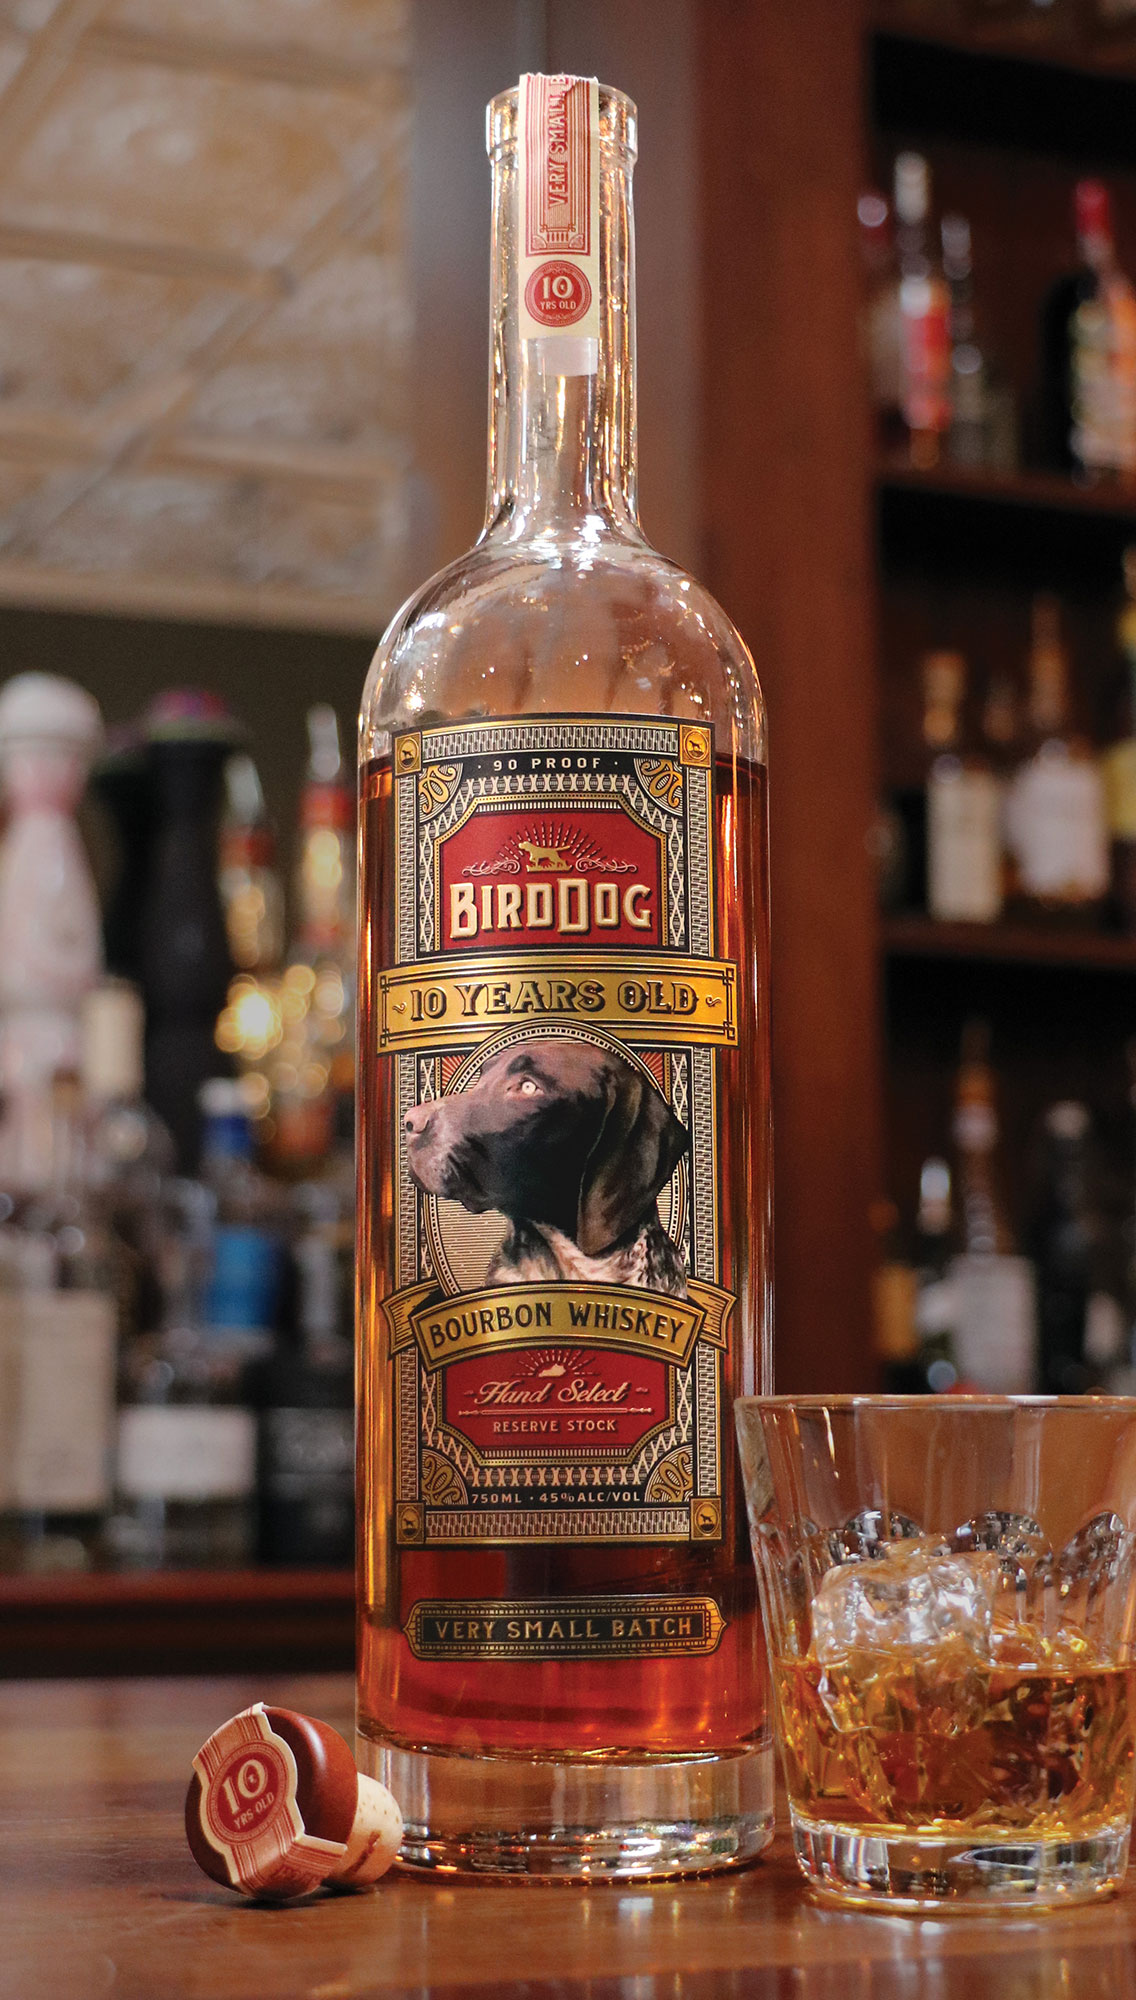 Bird Dog 10 Year Old Kentucky Bourbon